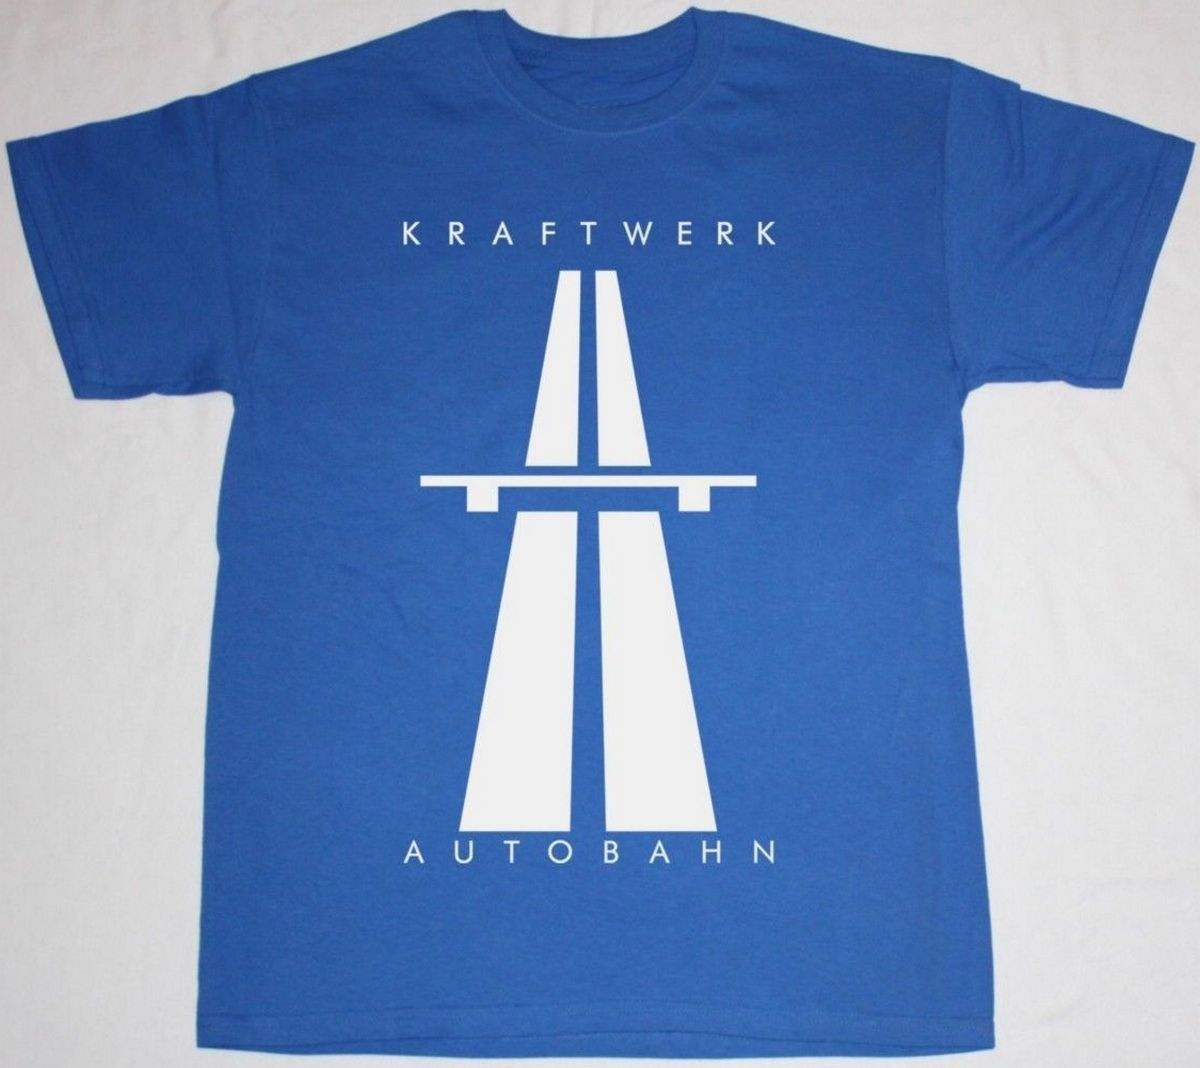 KRAFTWERK AUTOBAHN KRAUTROCK ELECTRONIC SYNTHROCK NEW ROYAL BLUE T-SHIRT Tee Shirt For Men O-Neck Tops Male